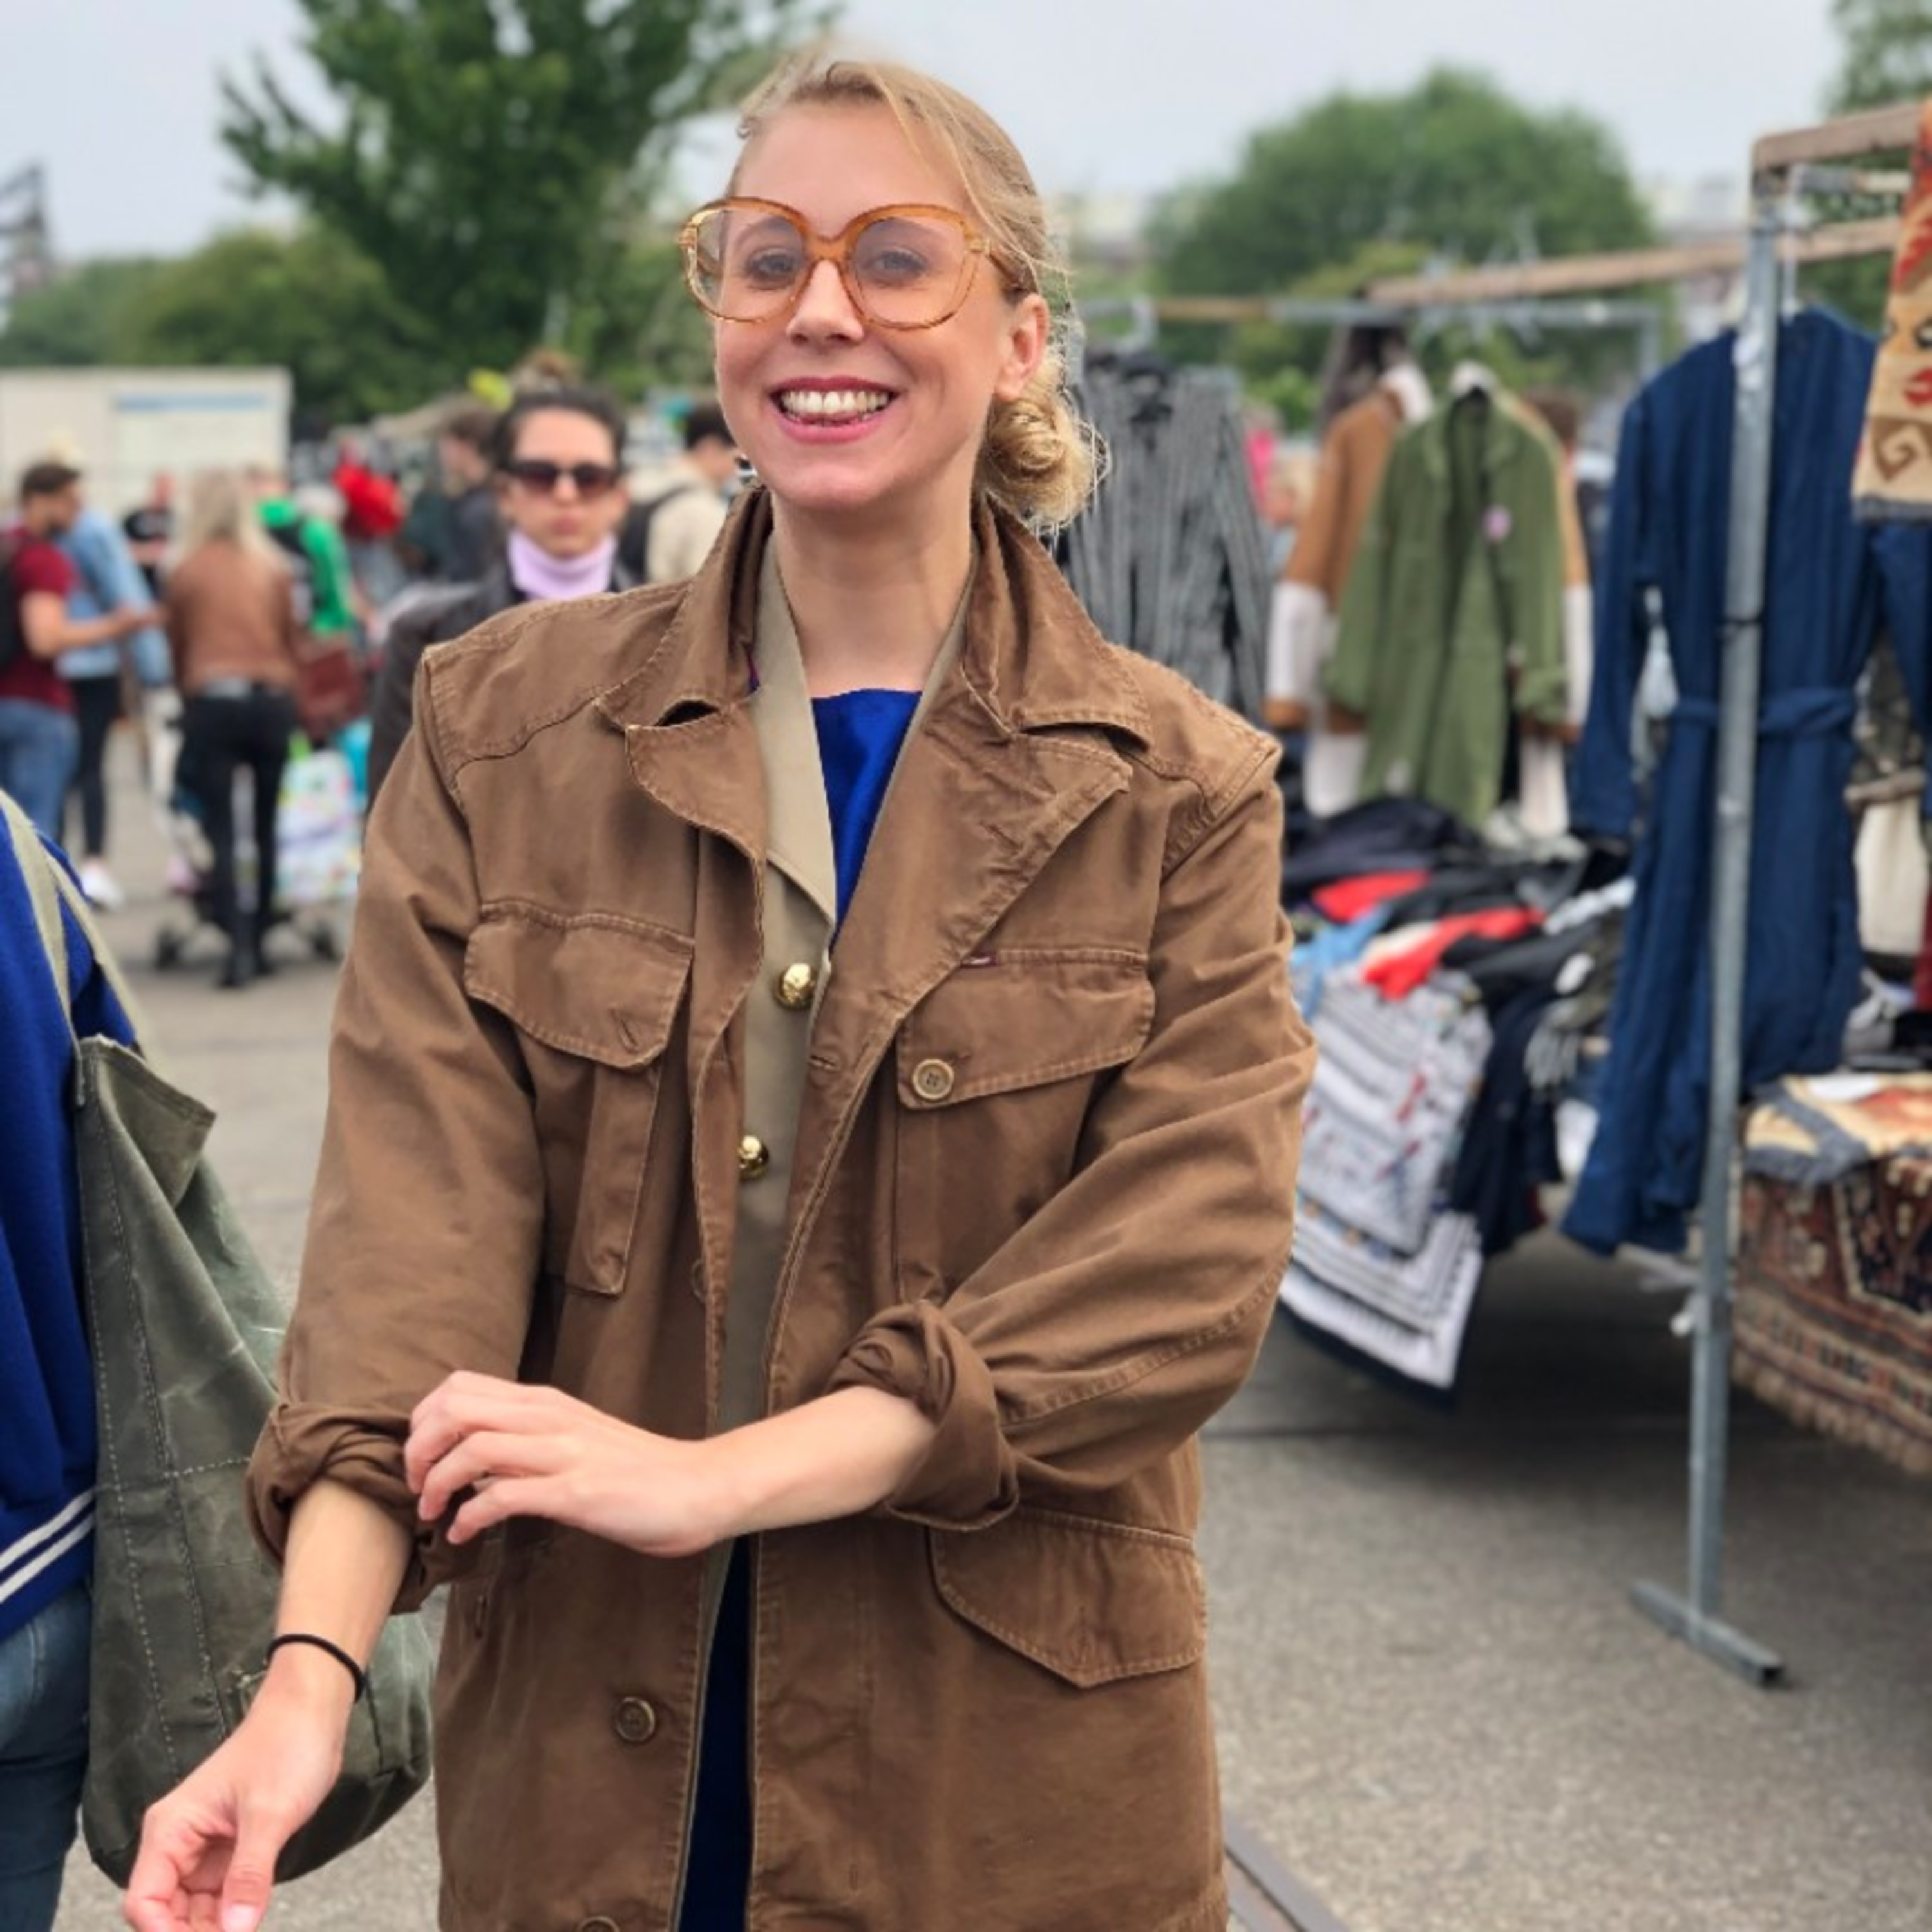 Euro Thrifting with Thrift Babe Sammy D